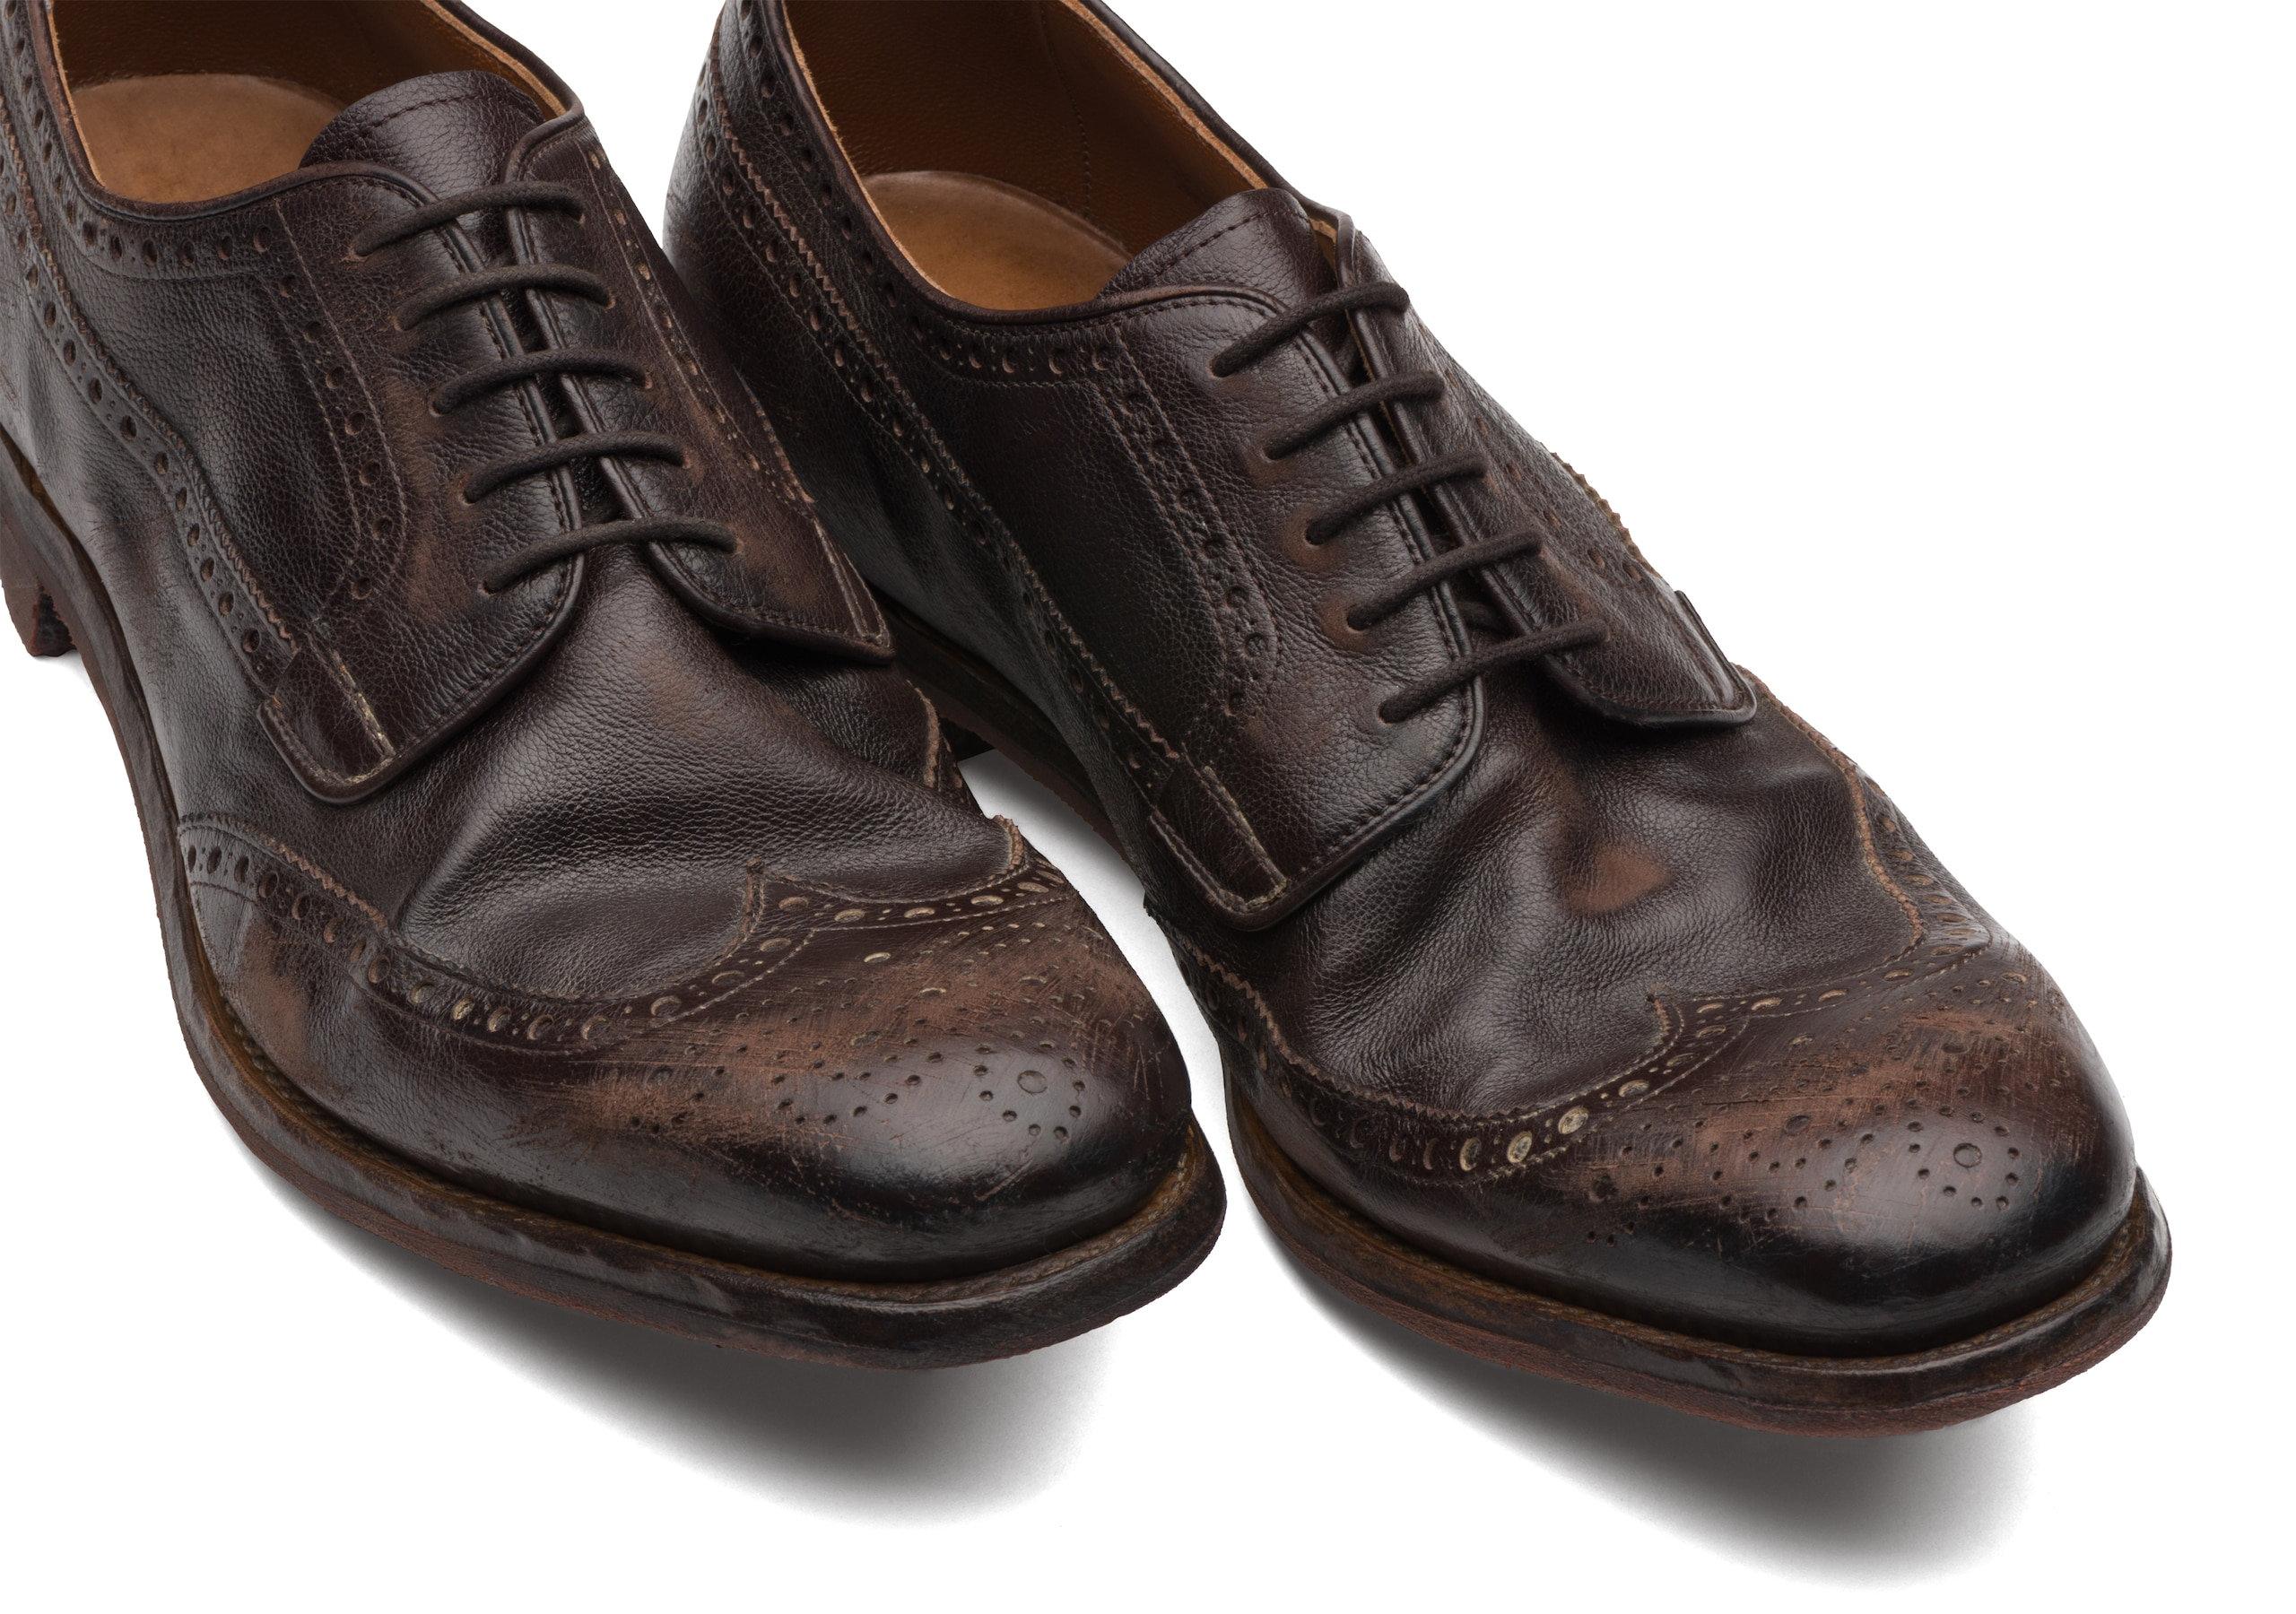 Grafton 1930 Church's Derby Brogue in Vitello Glacé Marrone